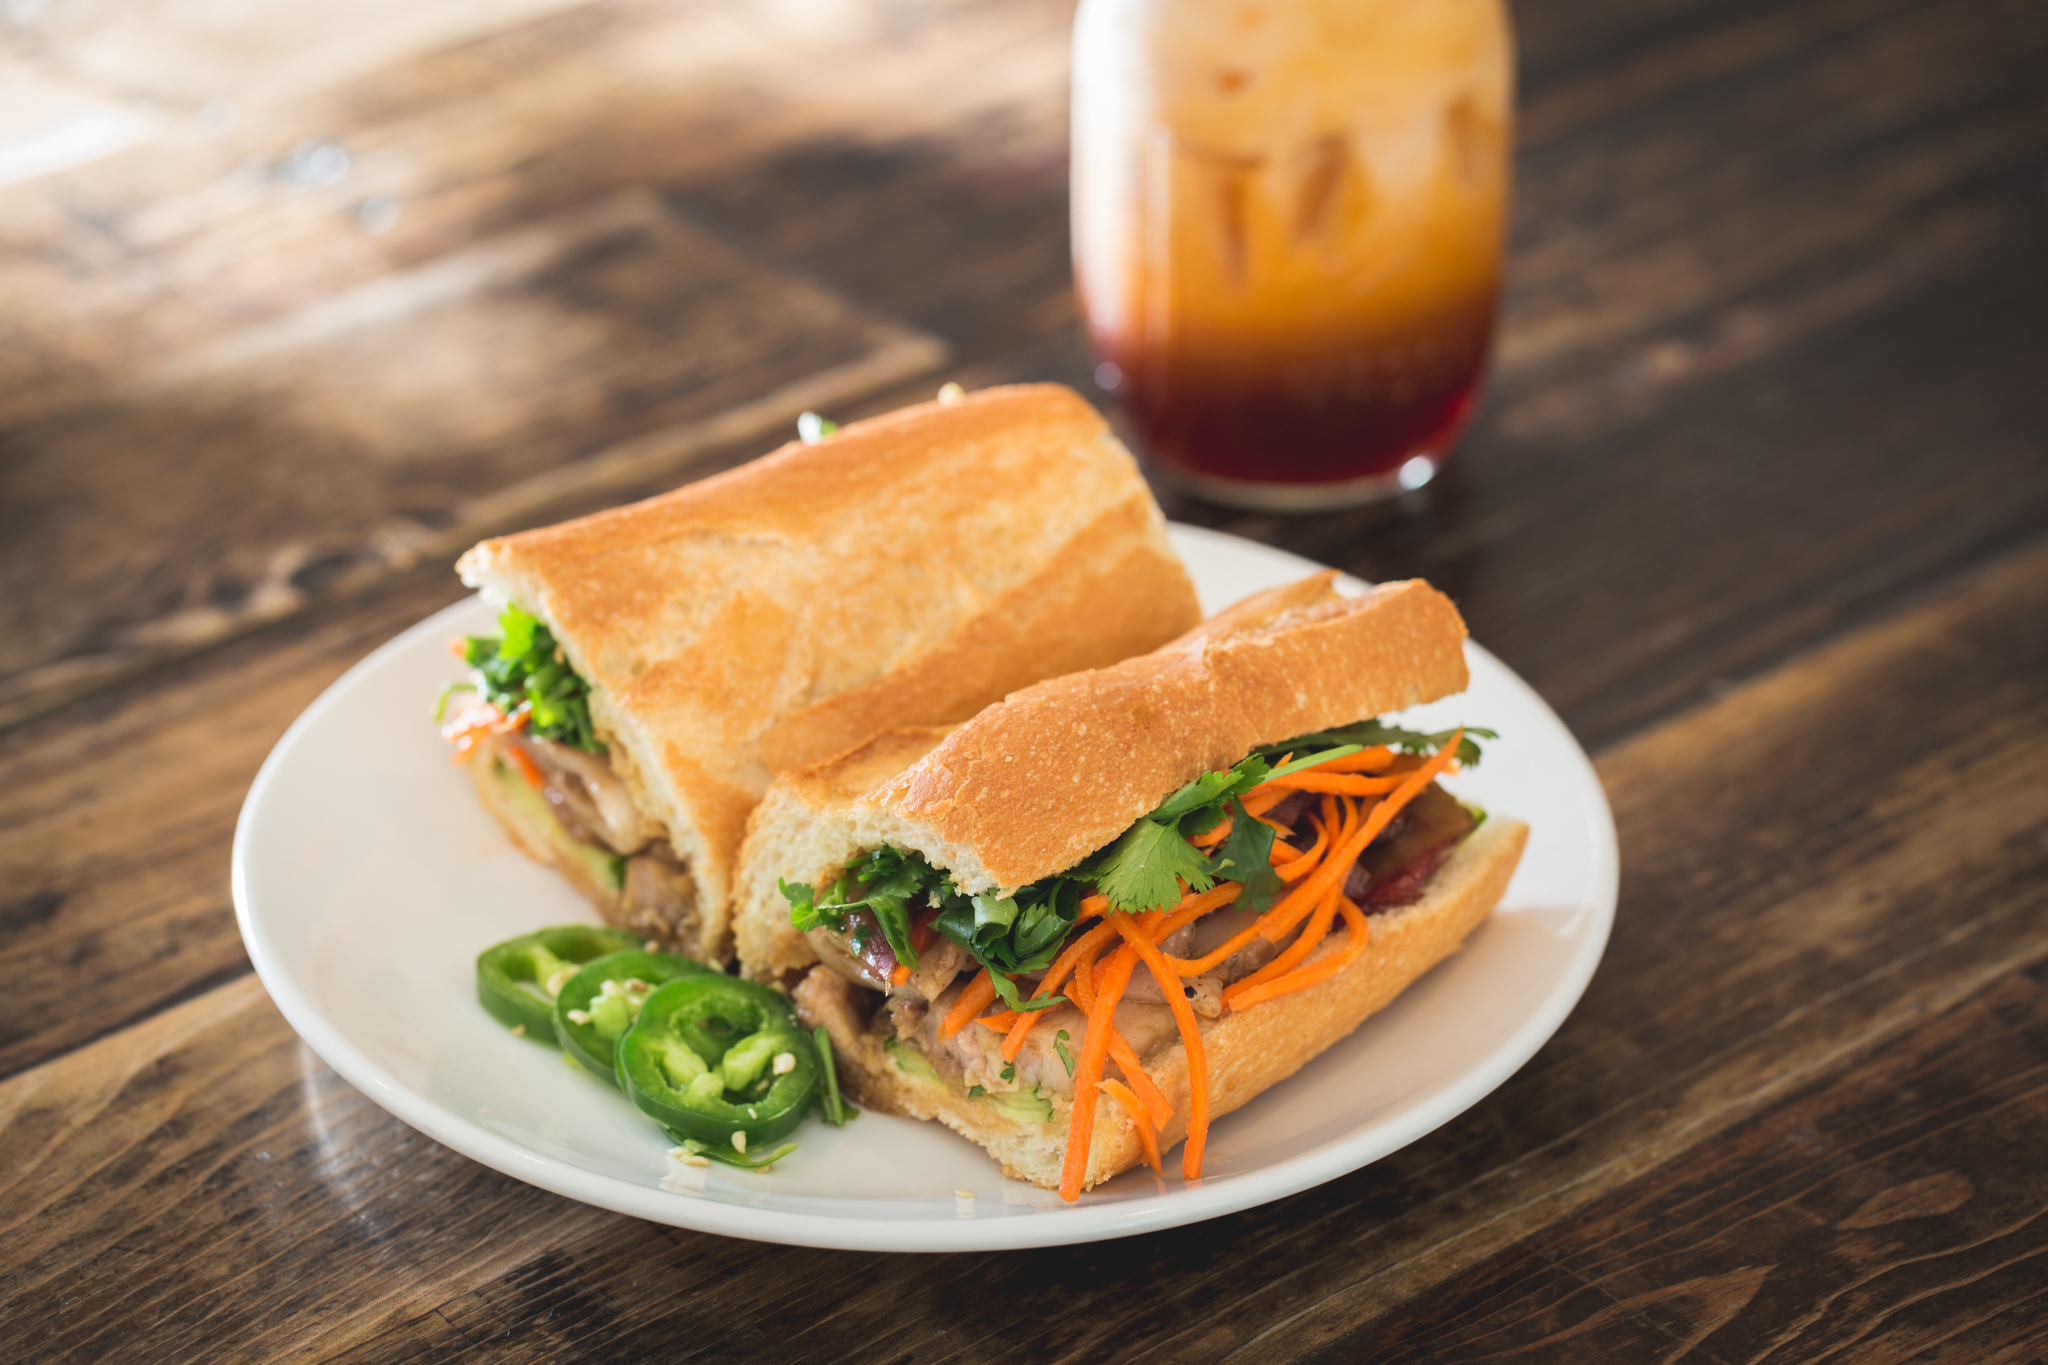 Kurobuta pork belly banh mi at Phorage